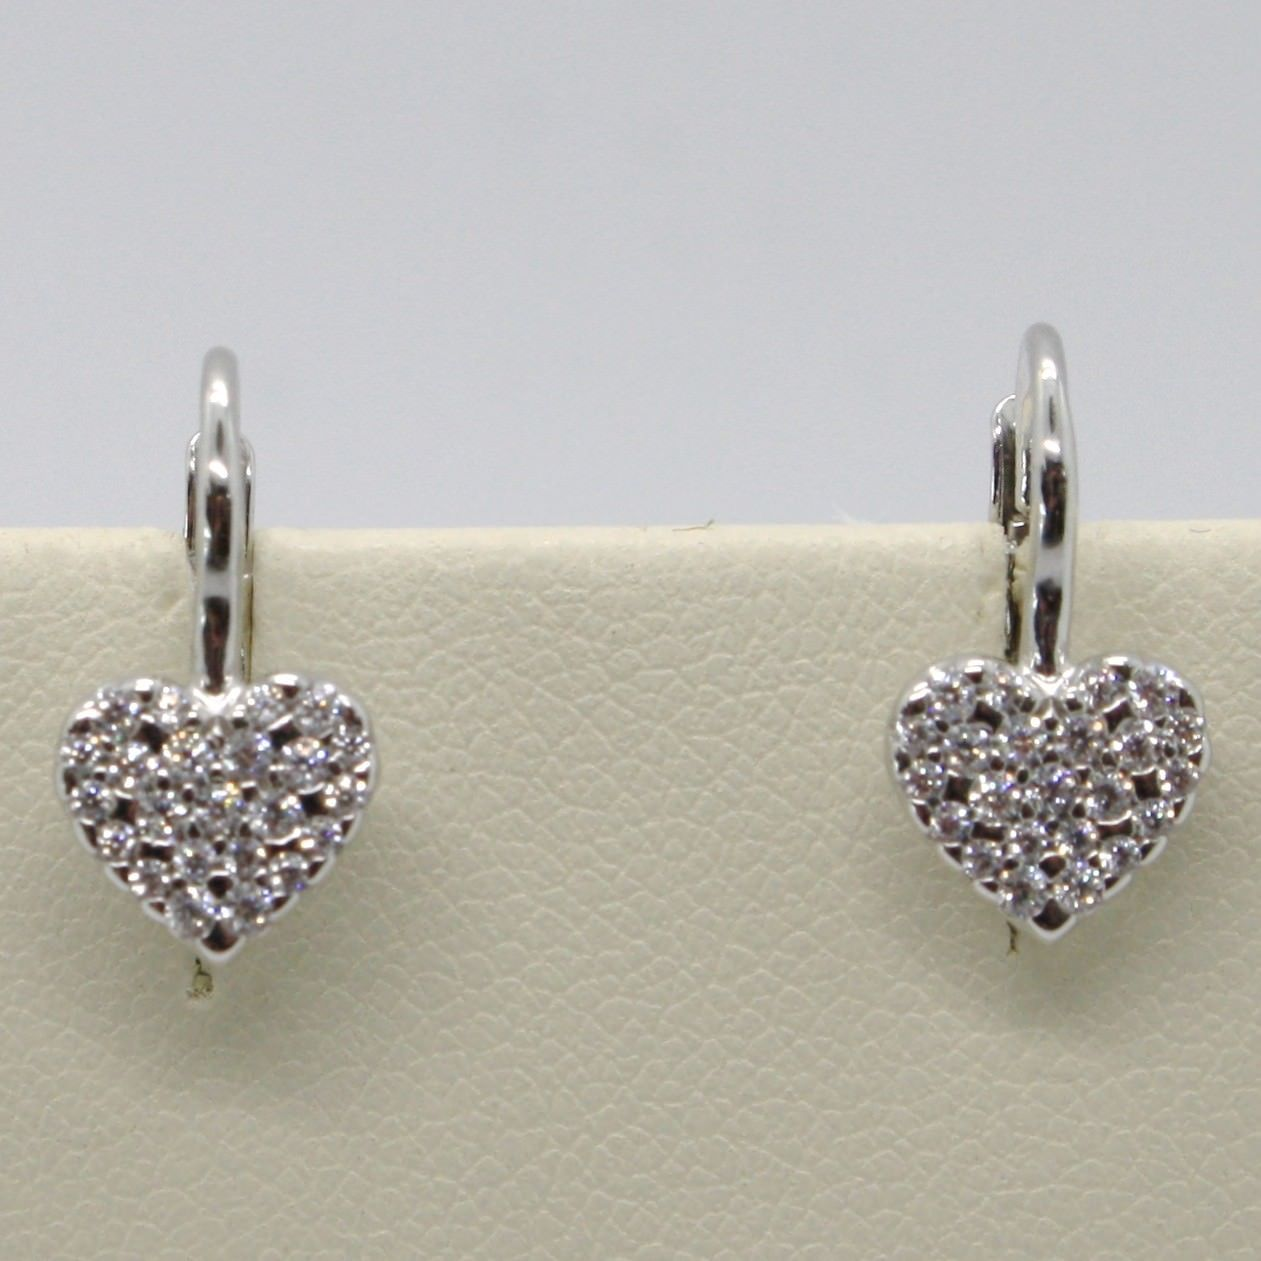 18K WHITE GOLD LEVERBACK EARRINGS, HEART WITH ZIRCONIA, LENGTH 15 MM, ITALY MADE